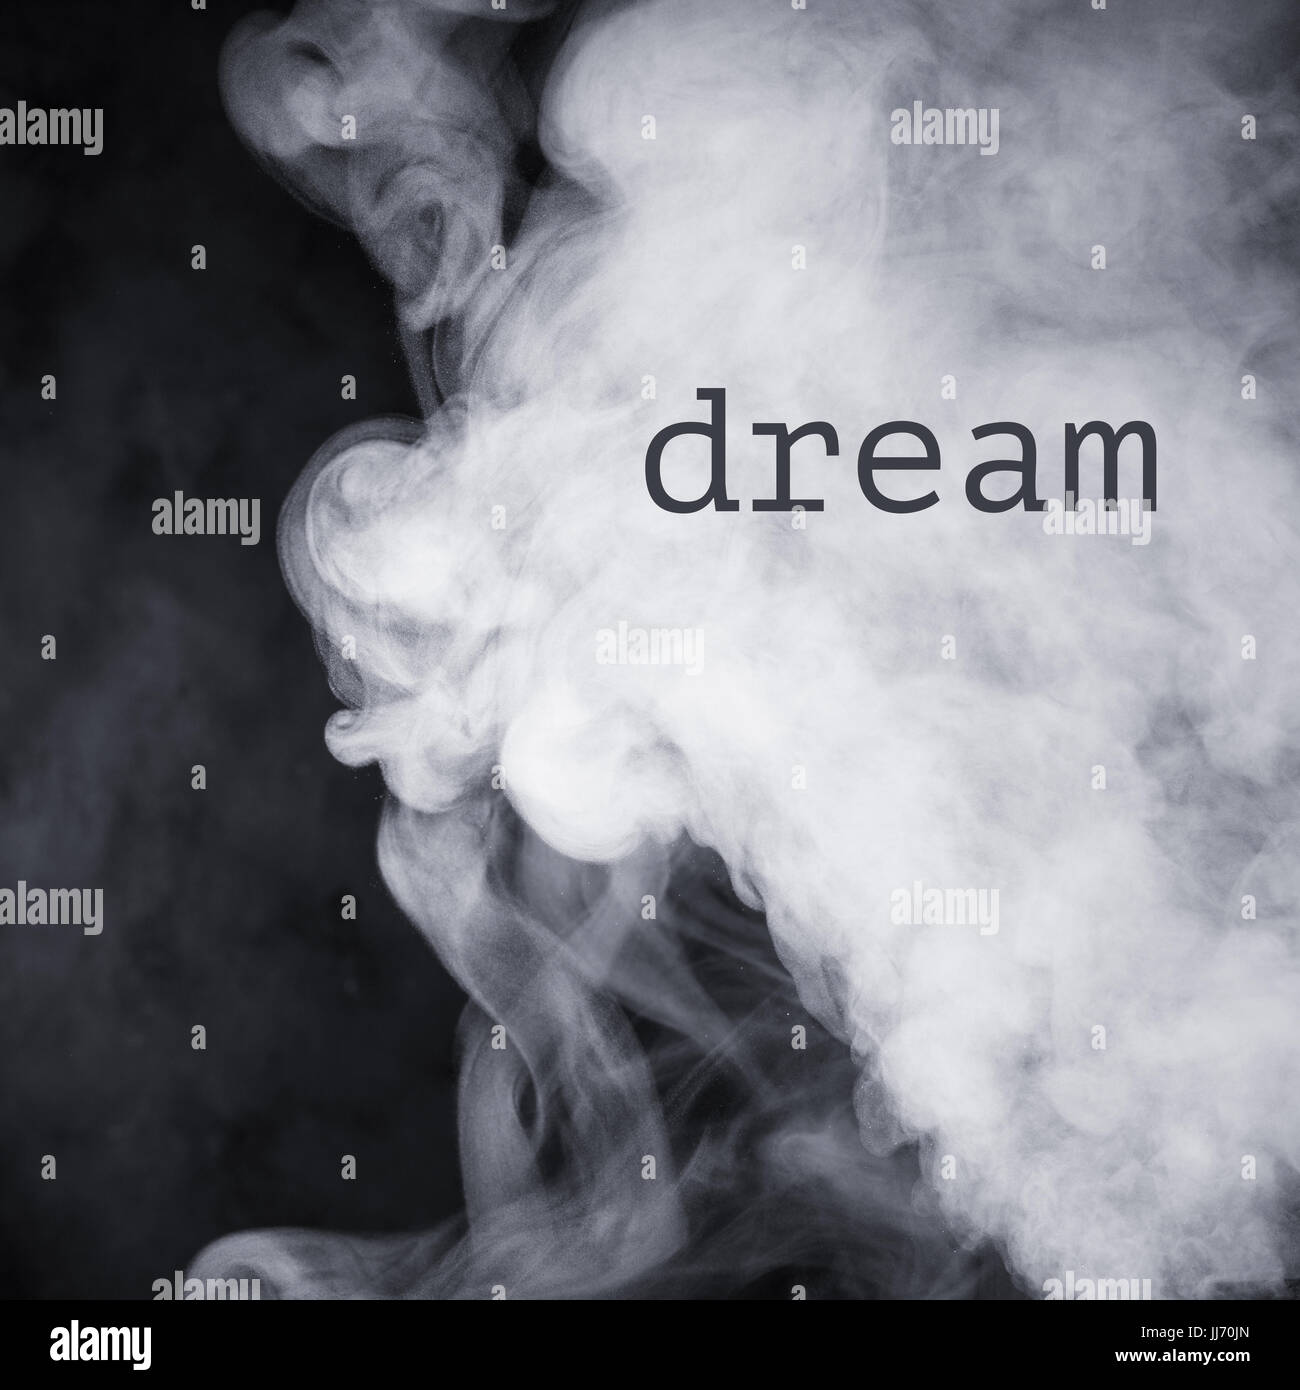 Inscription Dream on the abstract image of smoke. Stock Photo